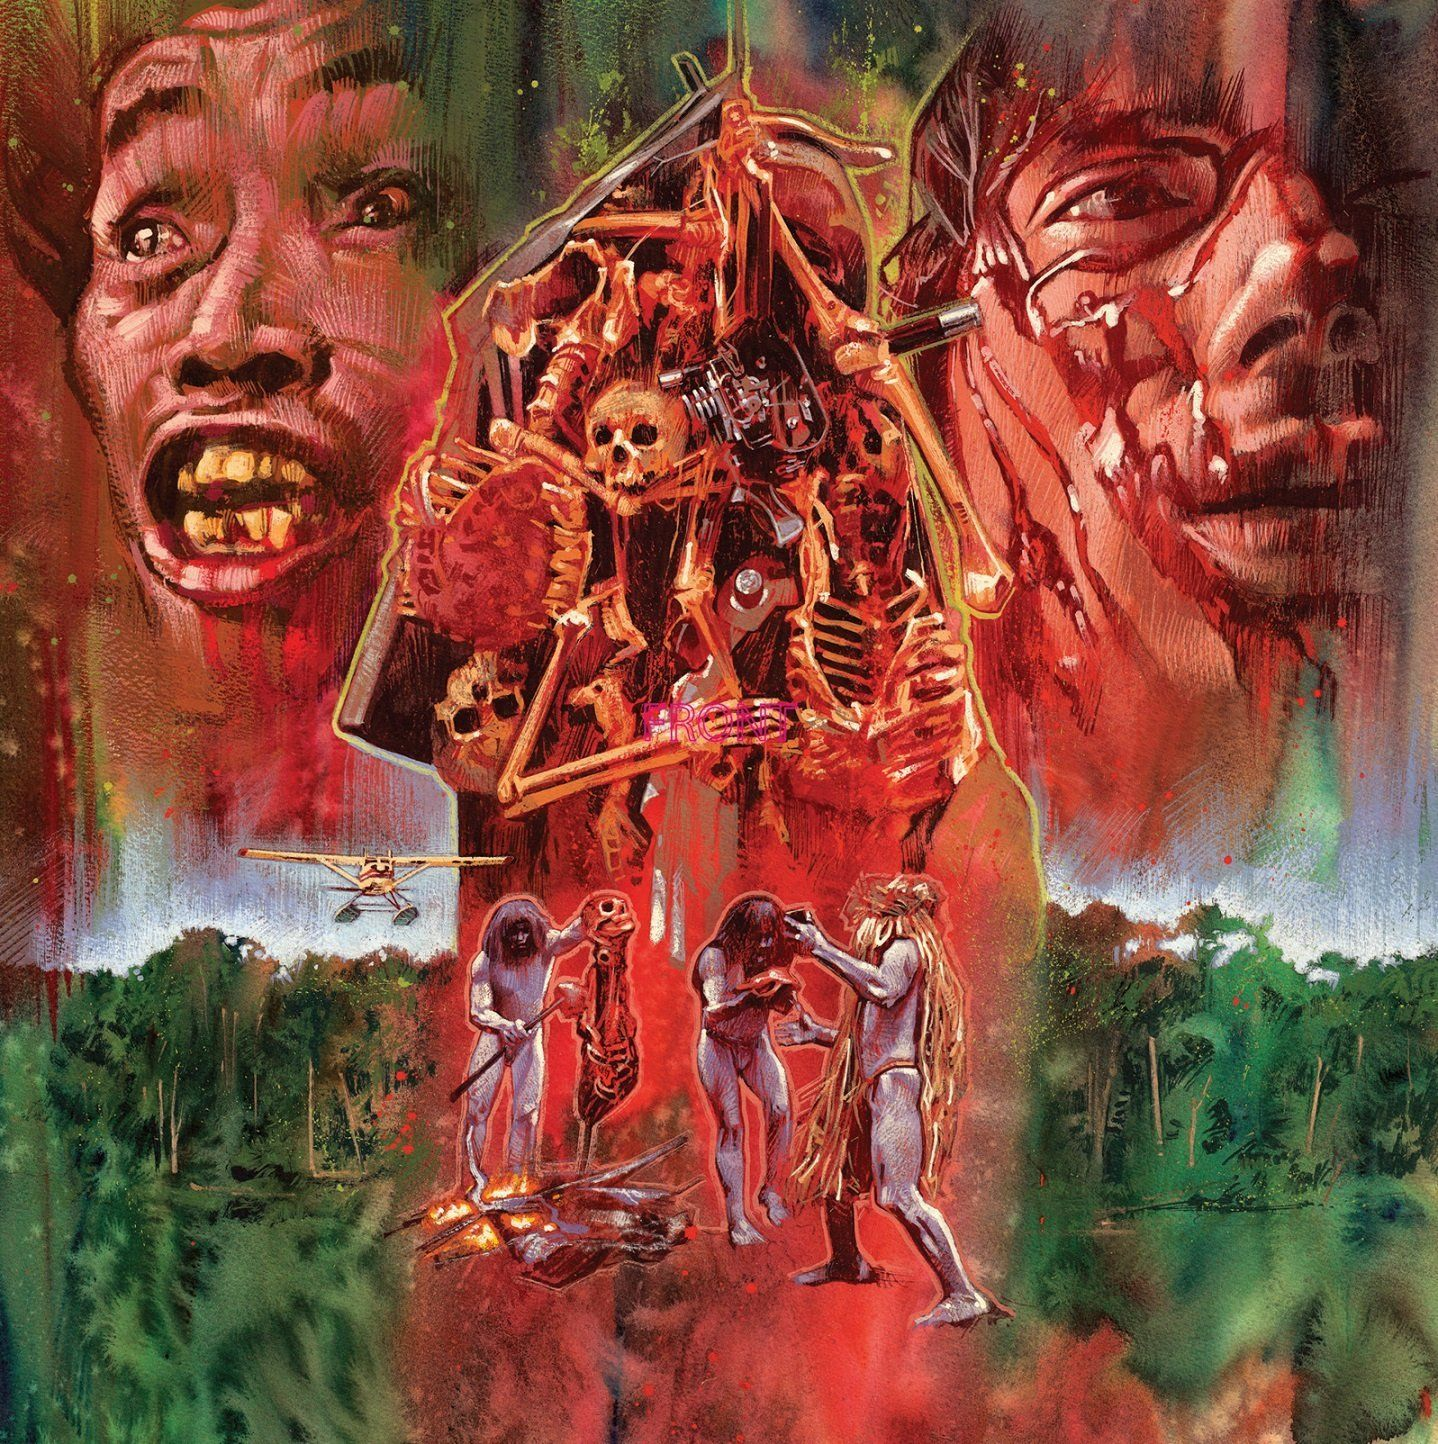 Cannibal Holocaust [VINYL]: Amazon.co.uk: Music